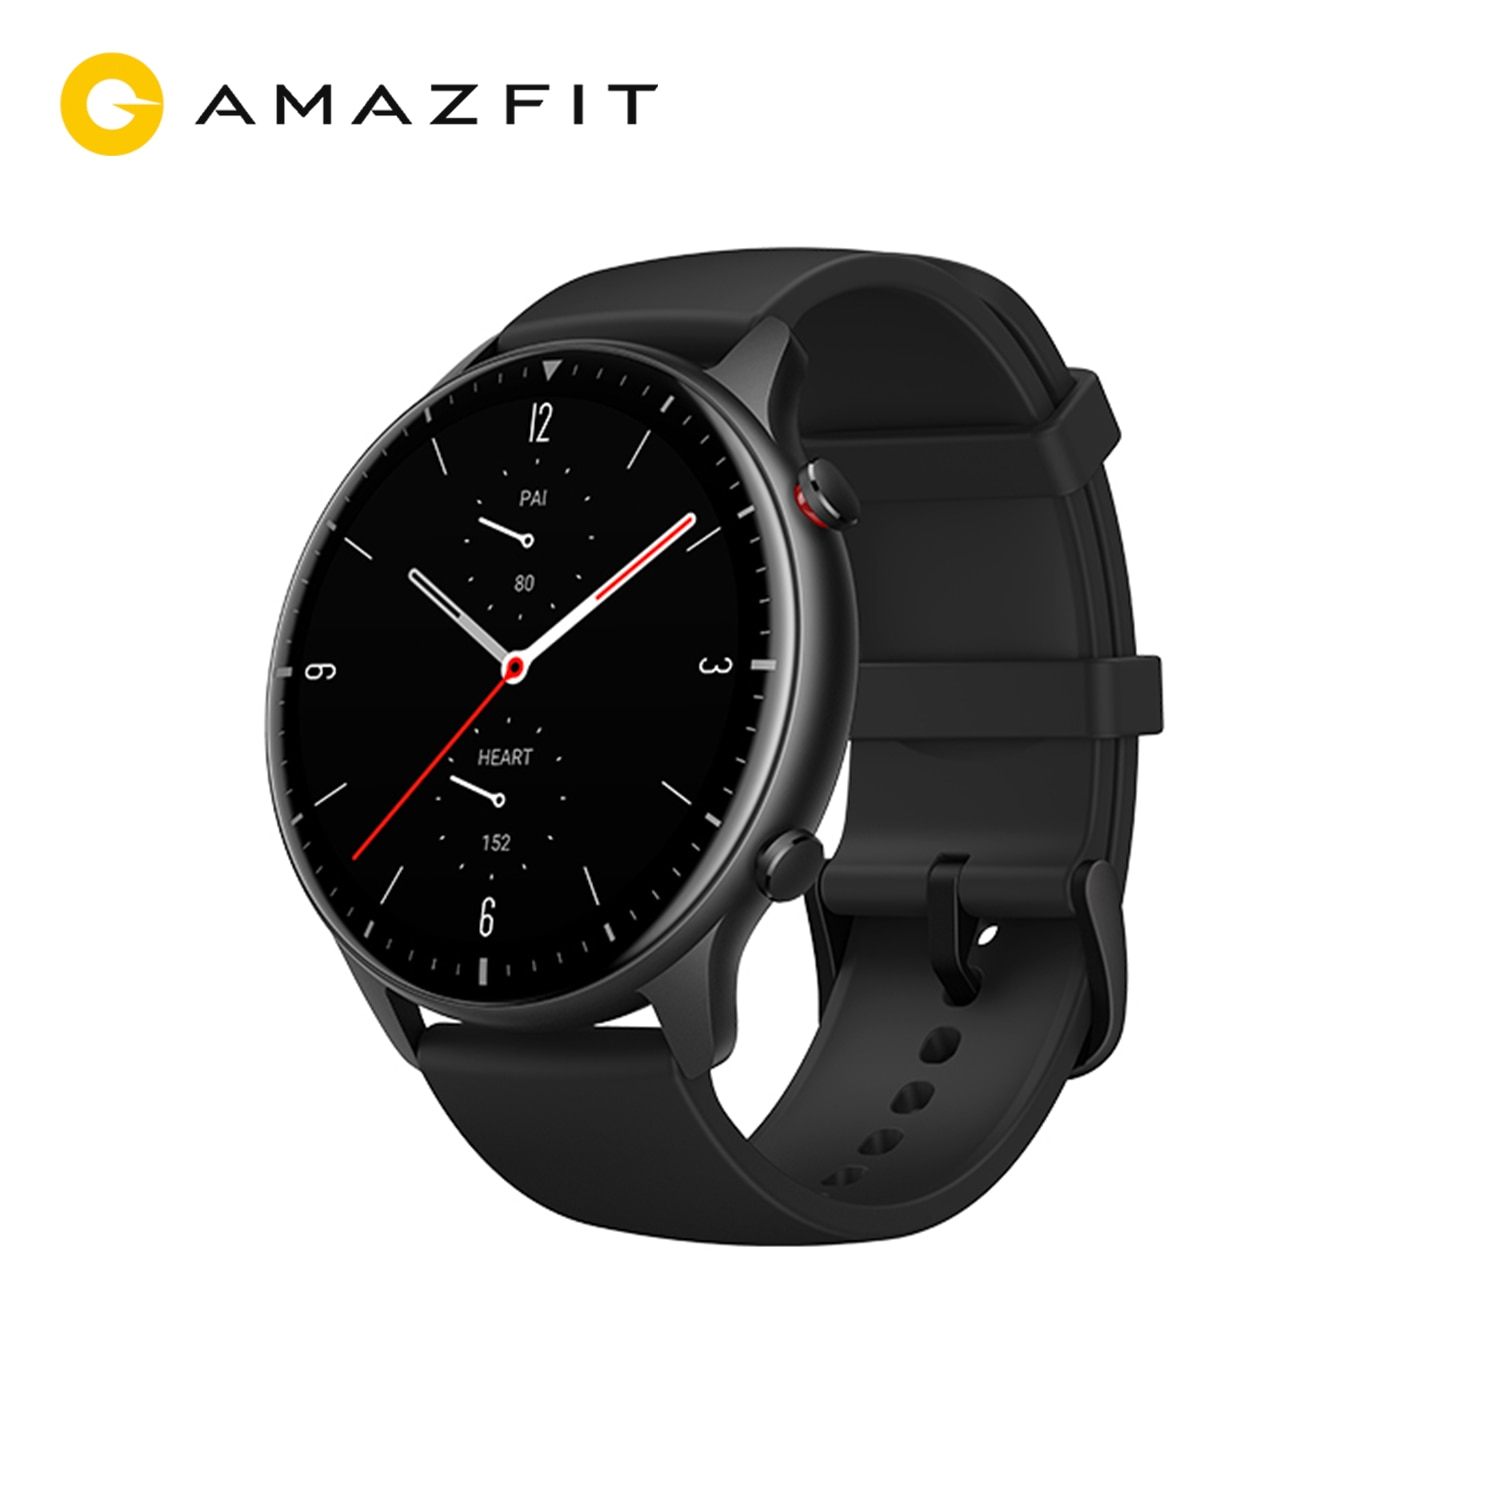 Promo Amazfit GTR 2 12 Sports Modes Smart Watch Fitness Watch Answer Calls Alexa Built-in Sleep Monitoring Smartwatch For Android iOS